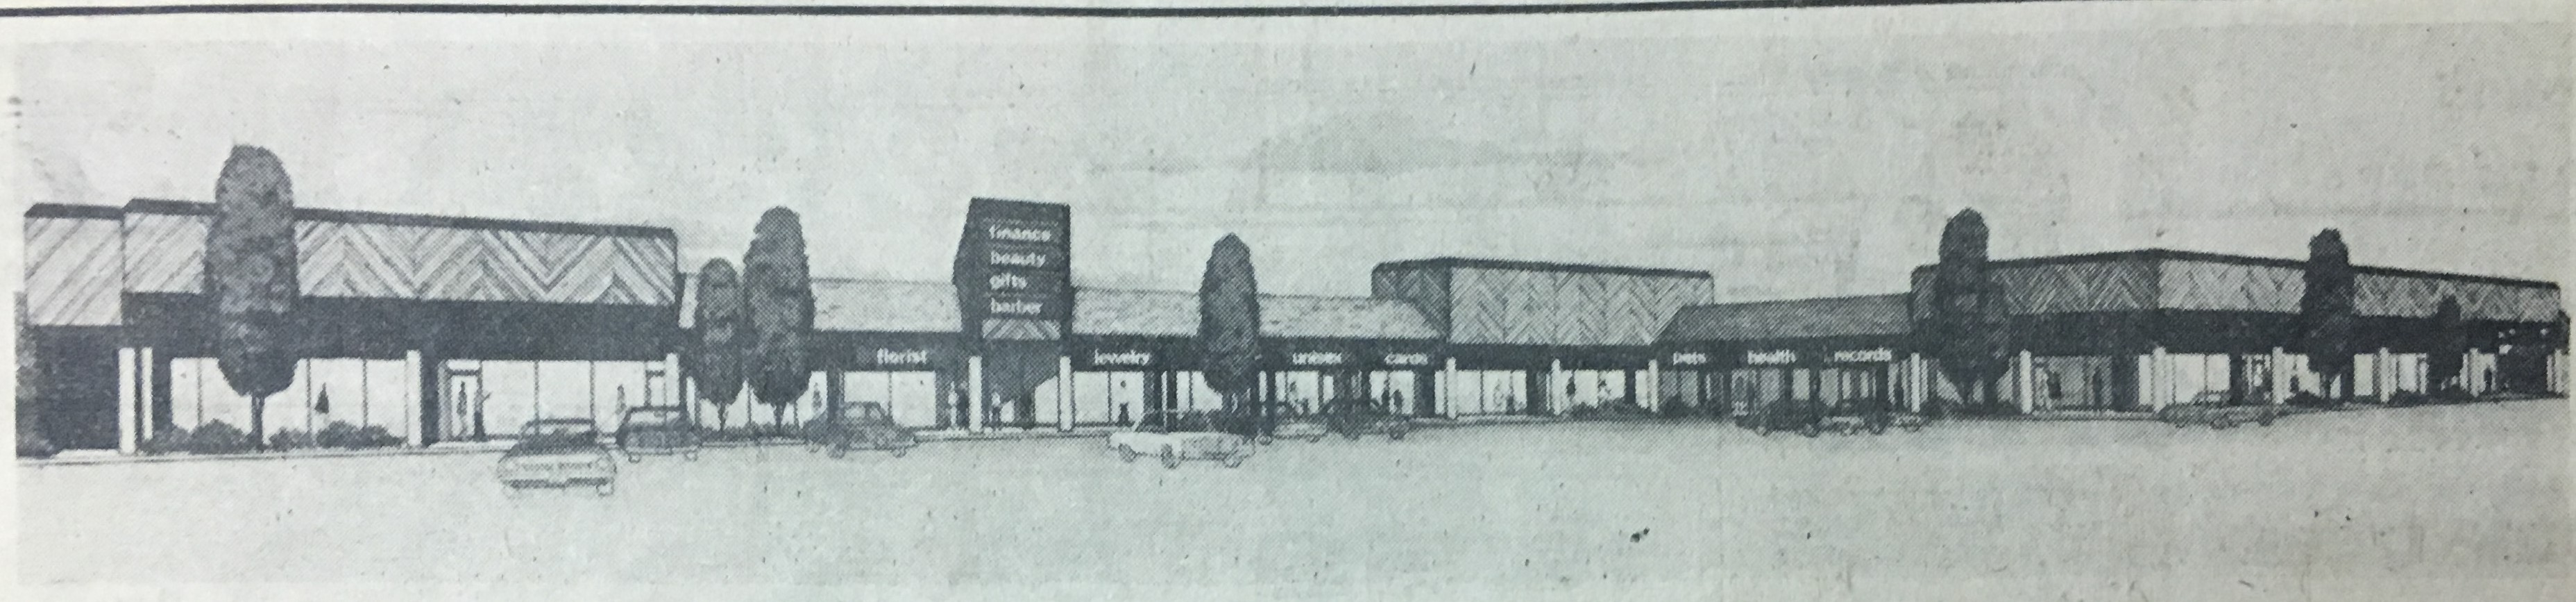 Concept art for the Ceredo Plaza. Image courtesy of the Ceredo Historical Society Museum.